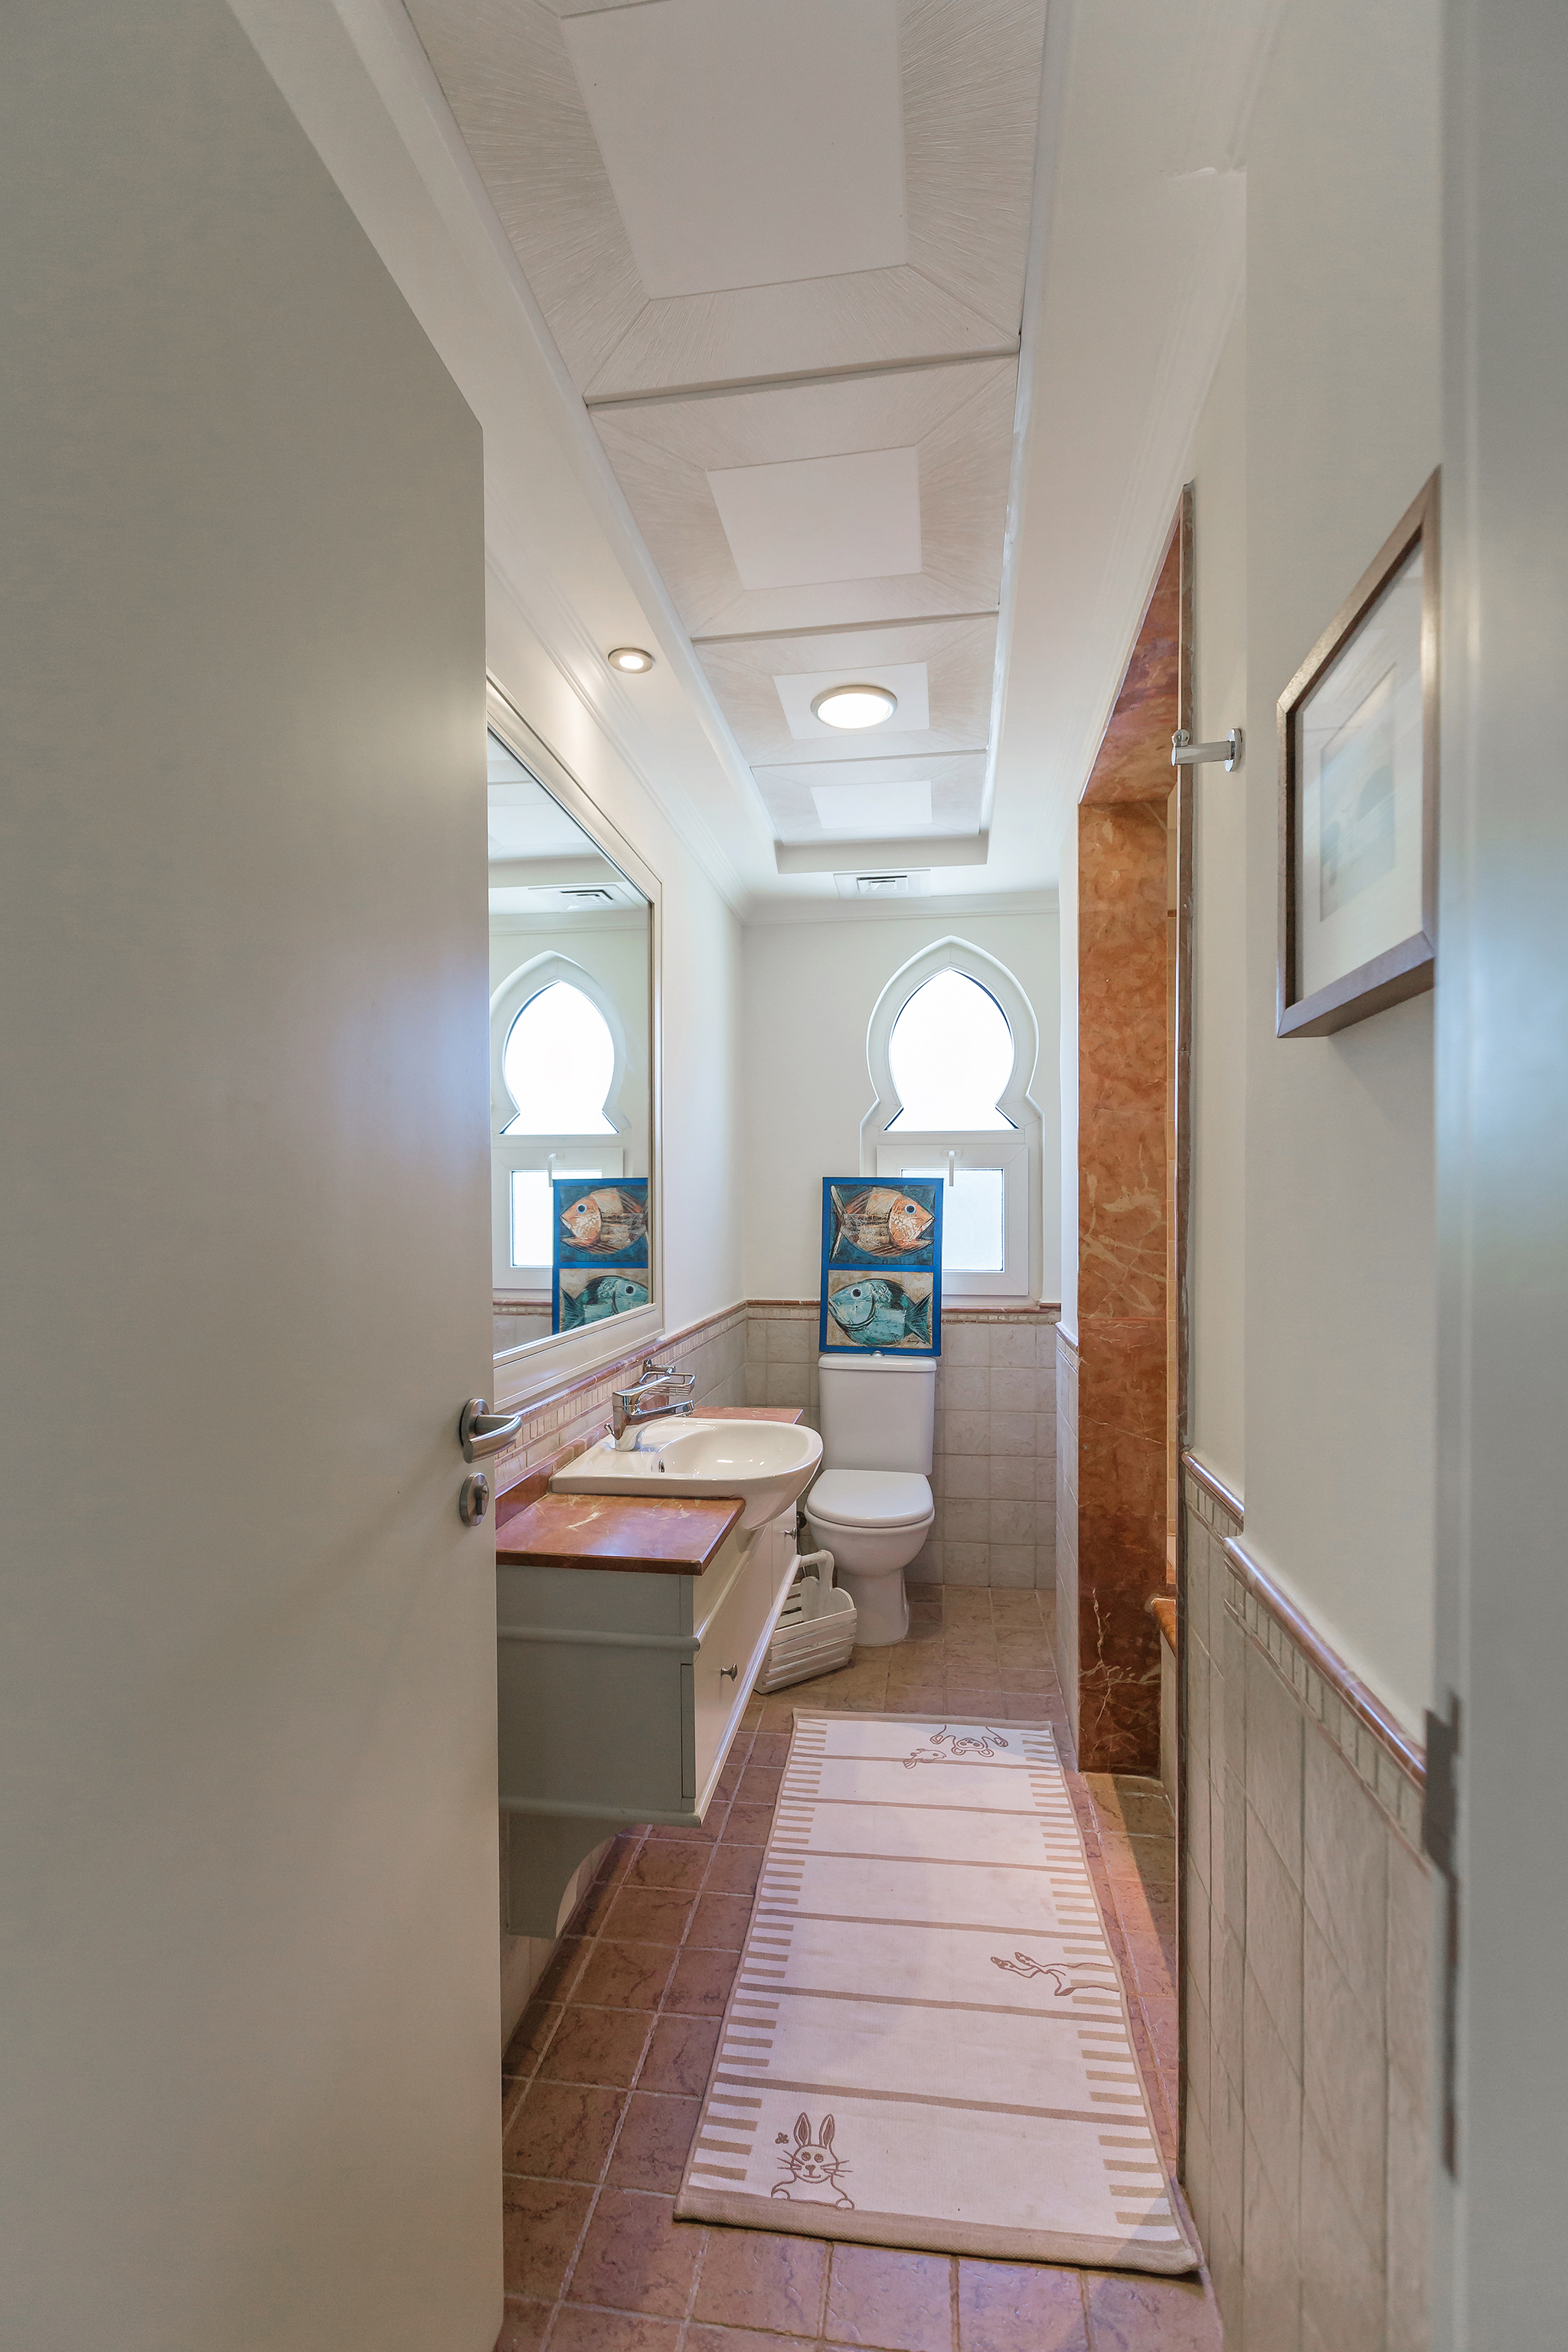 Perfectly formed bathroom with towels provided